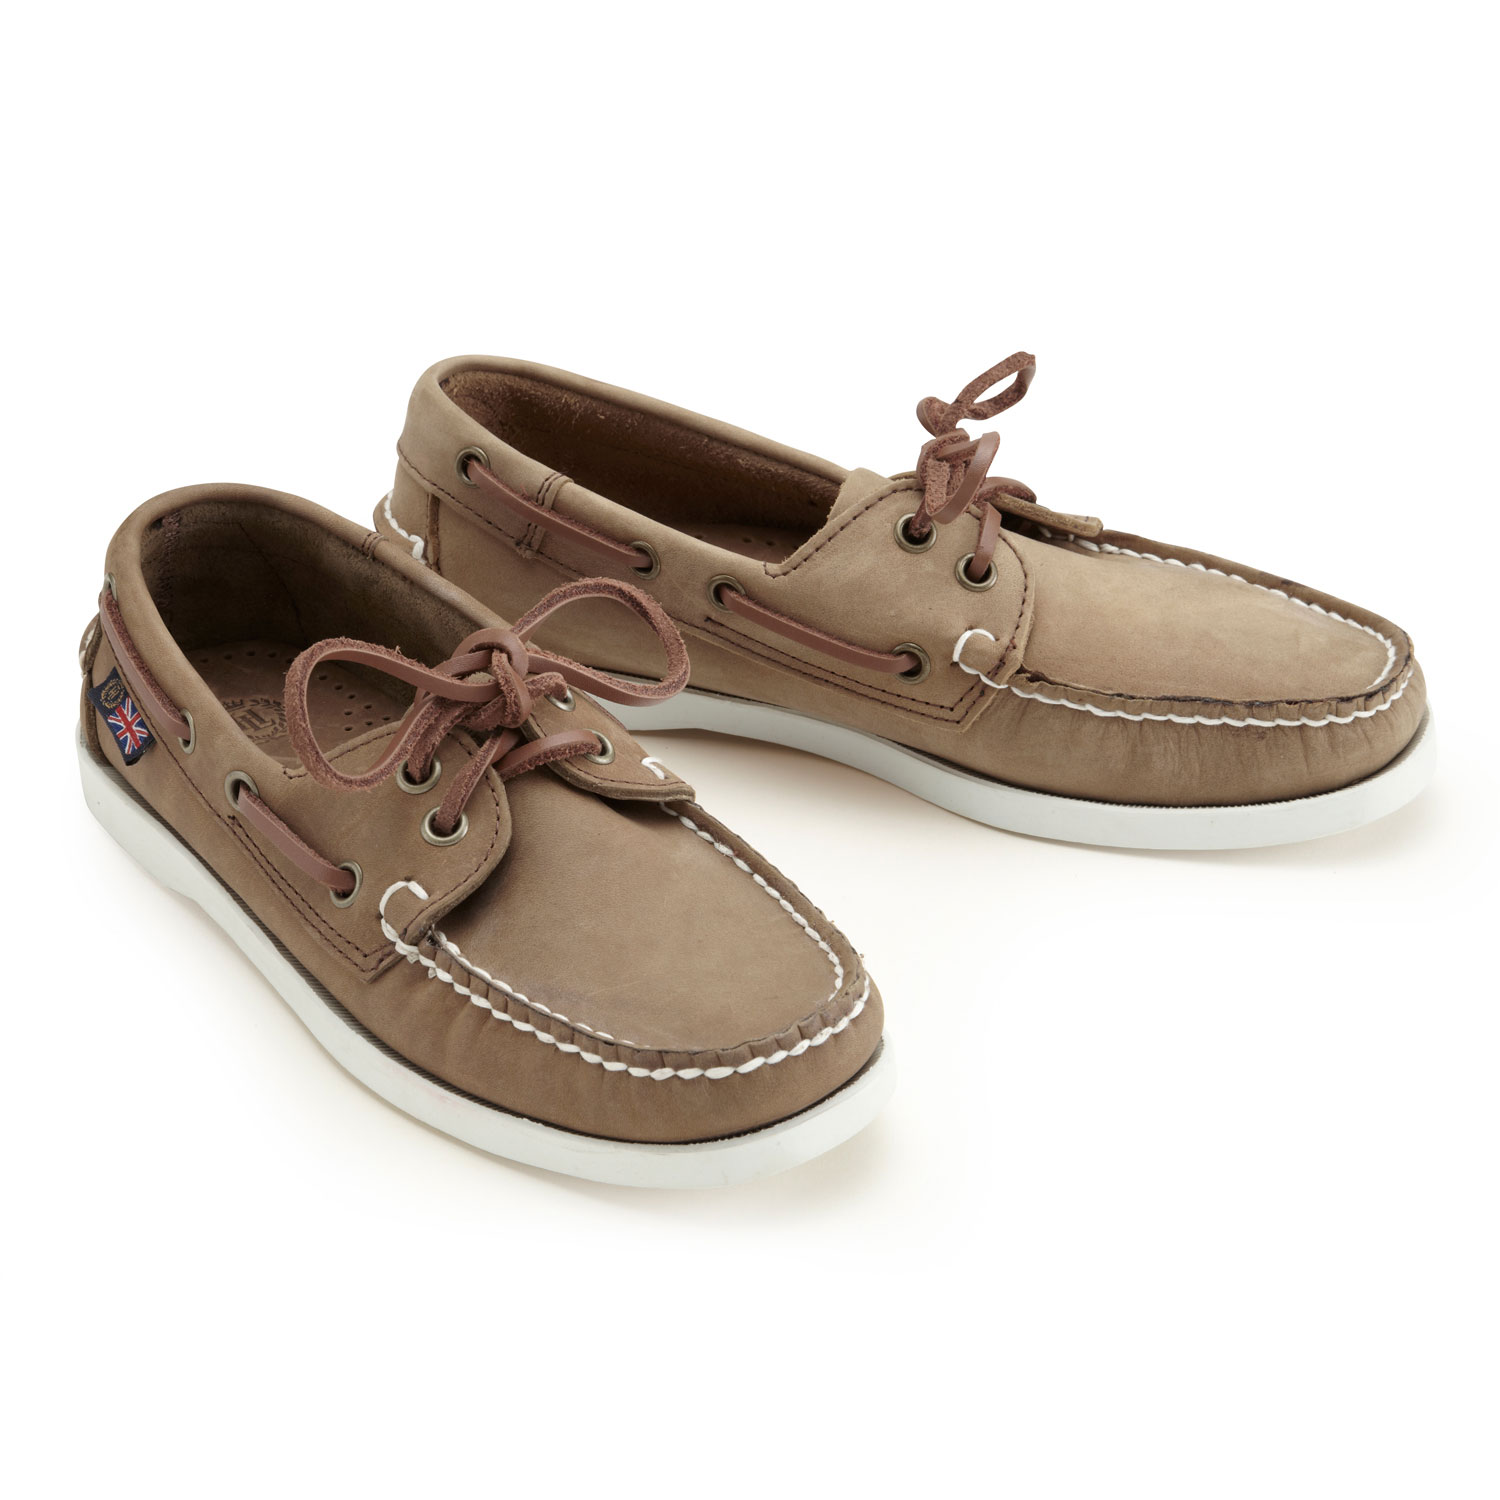 Henri Lloyd Deck Shoes Latest Collection For Men Fashion